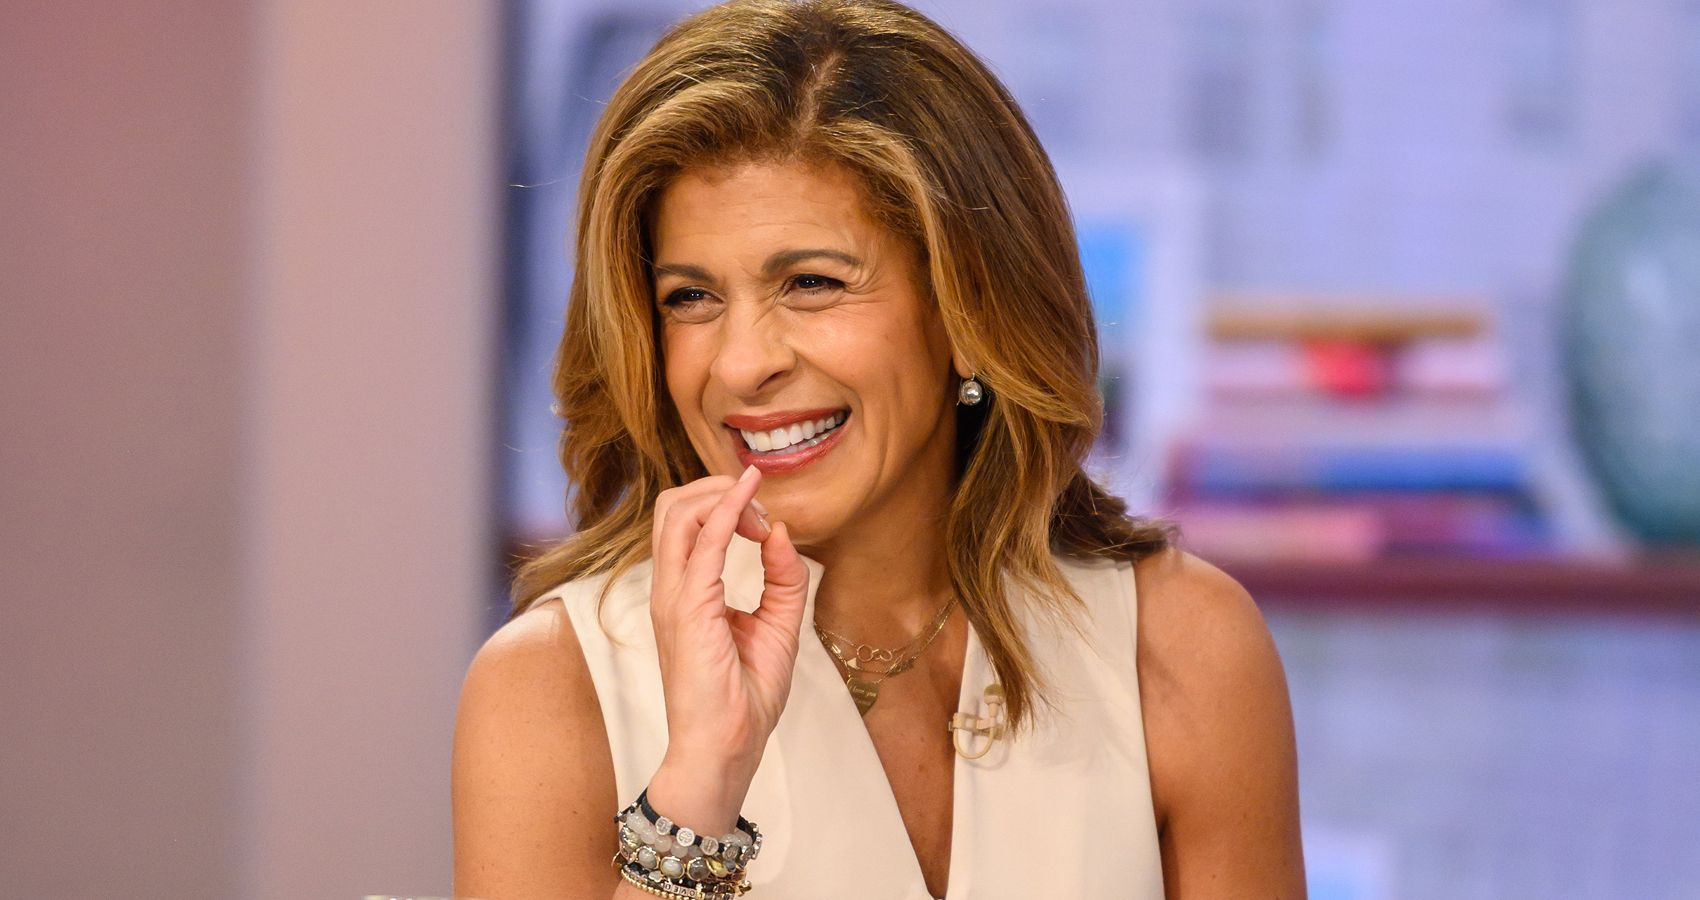 Hoda Kotb Is Ready & Waiting To Adopt Another Child